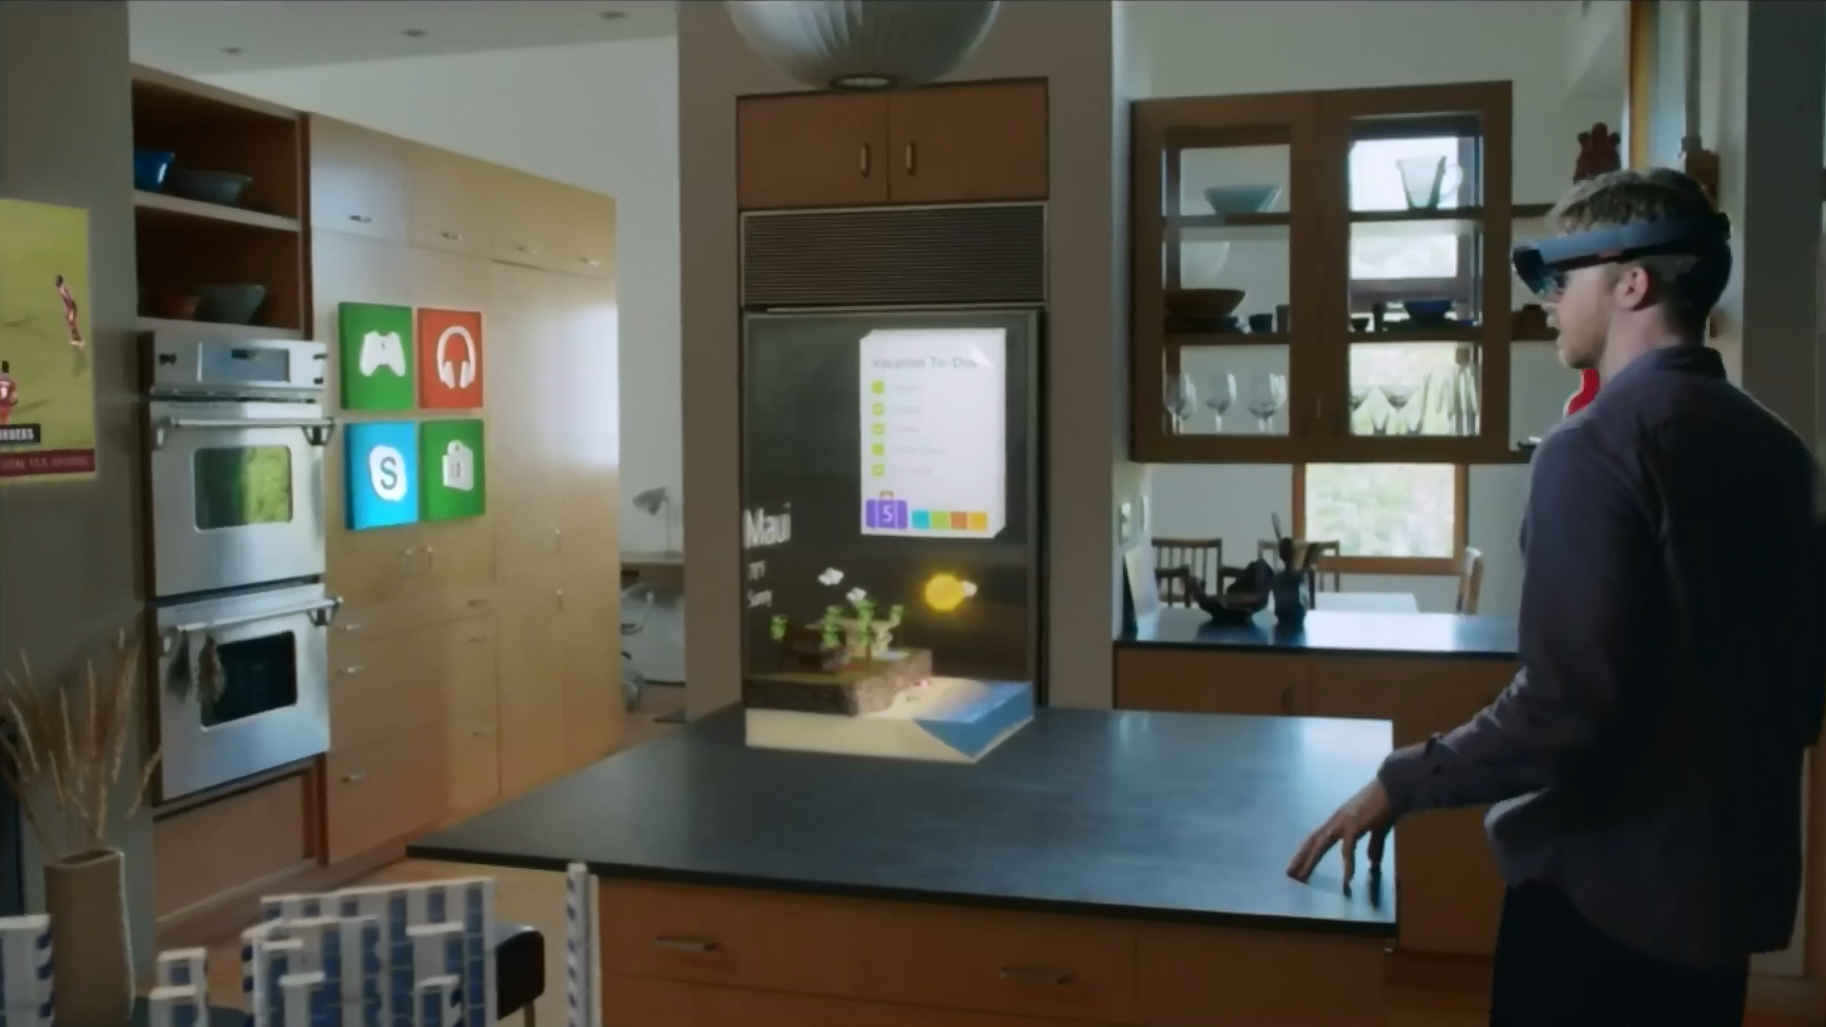 Microsoft announces augmented reality hololens glasses for The living room channel 10 studio audience